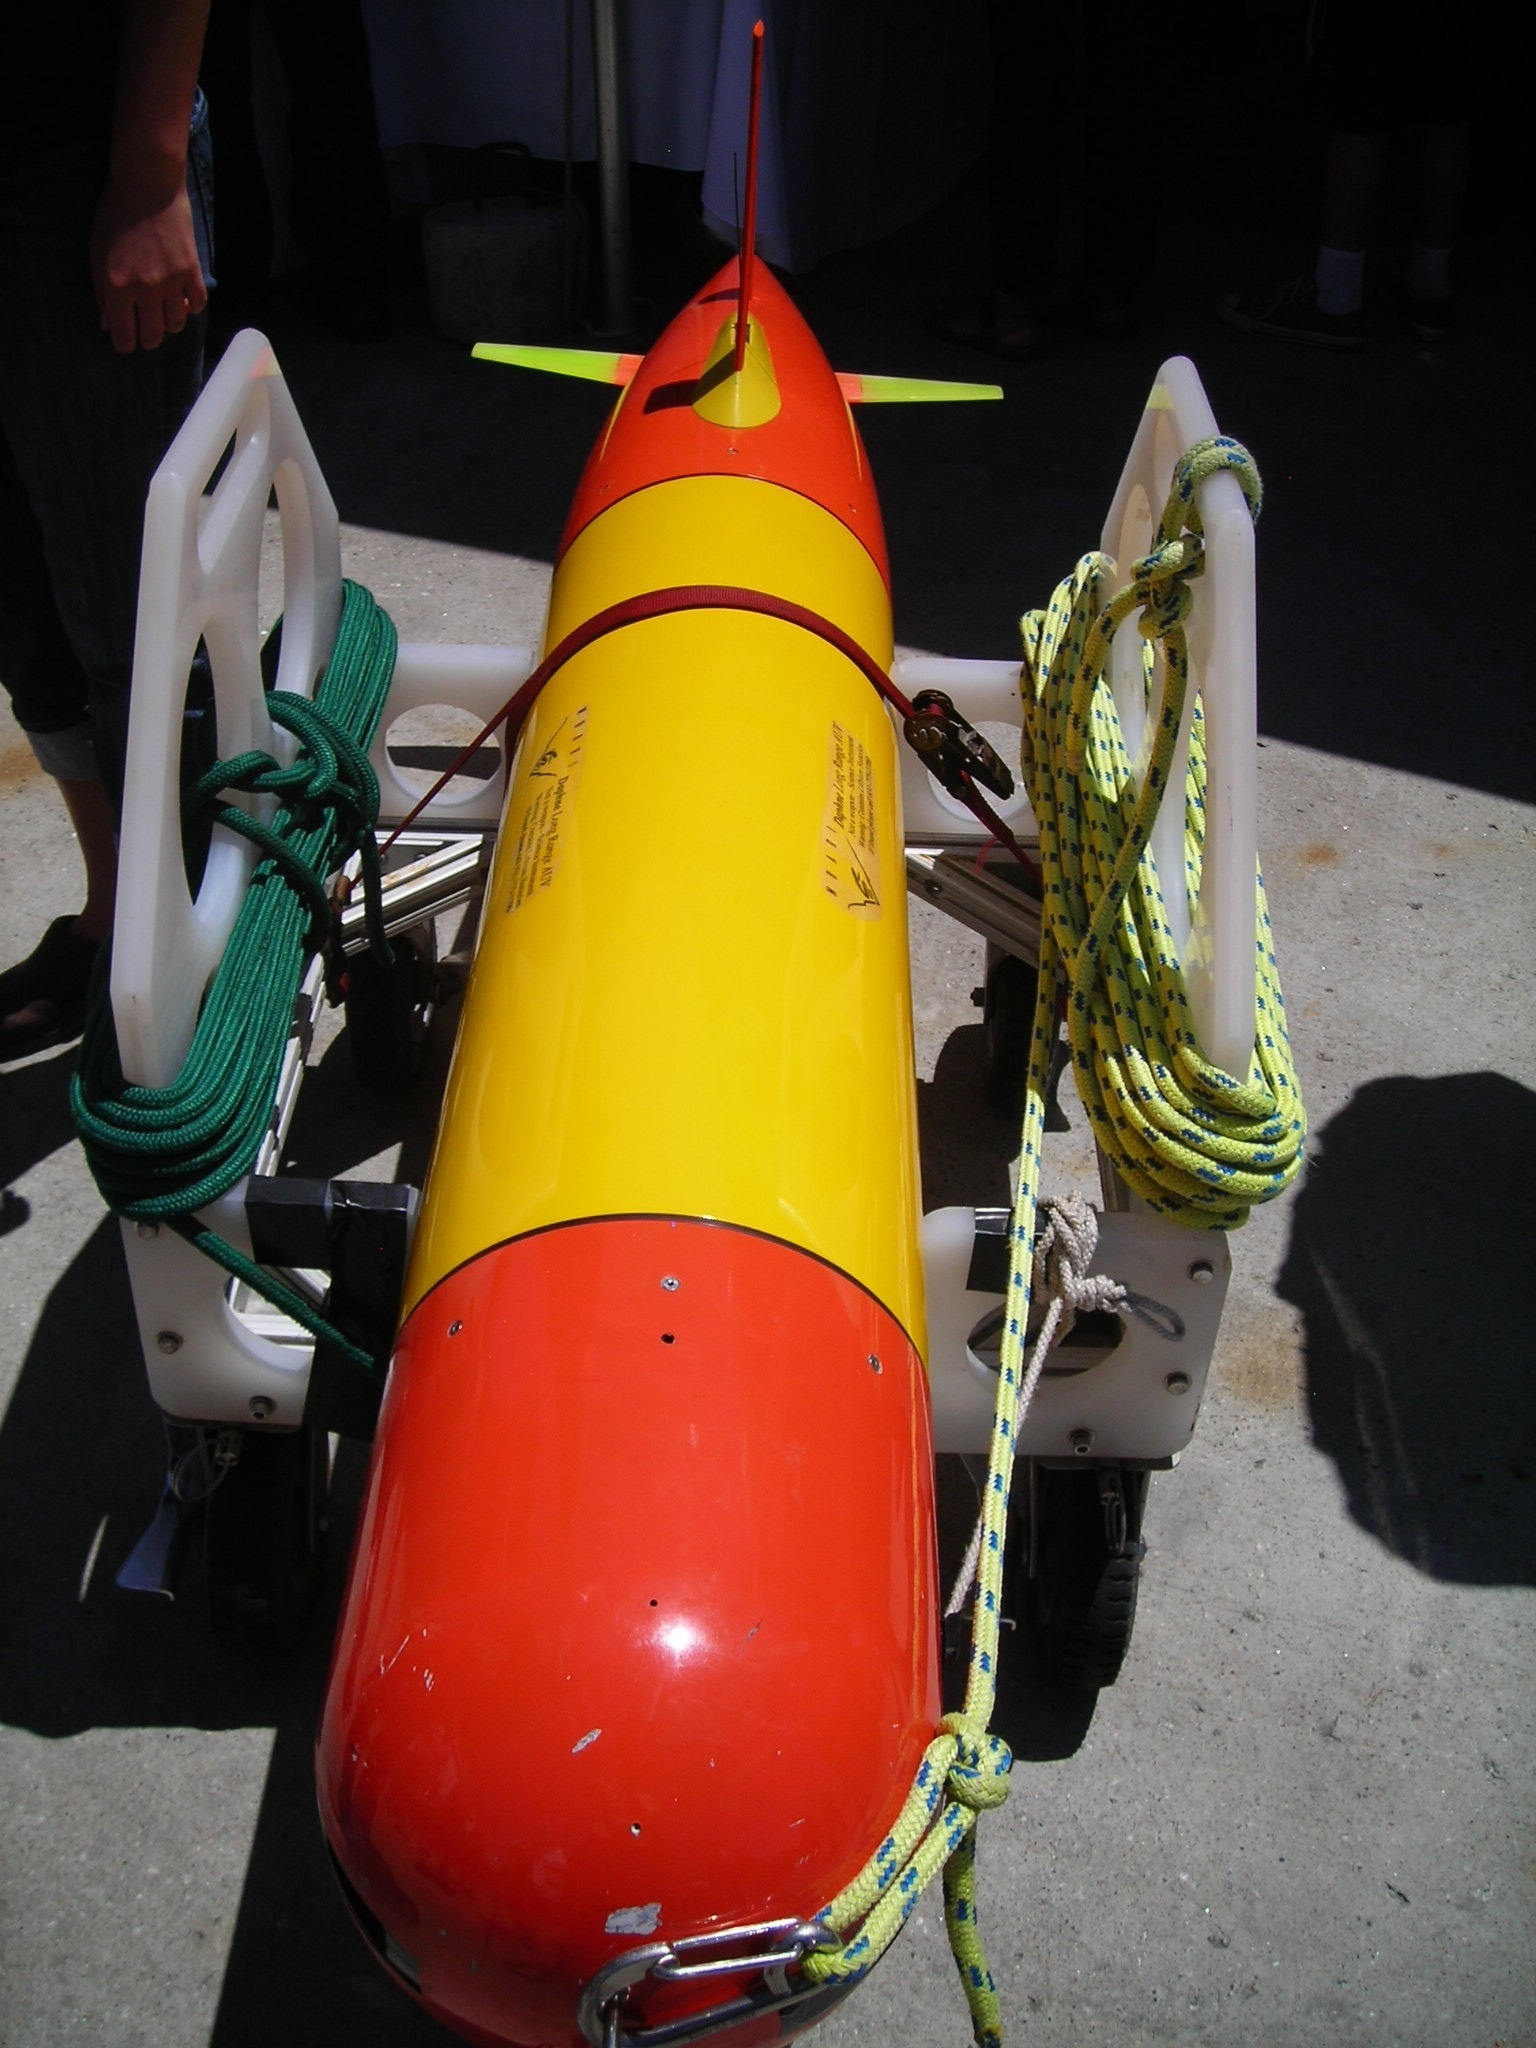 One of the smaller Autonomous Underwater vehicles, the Tethys